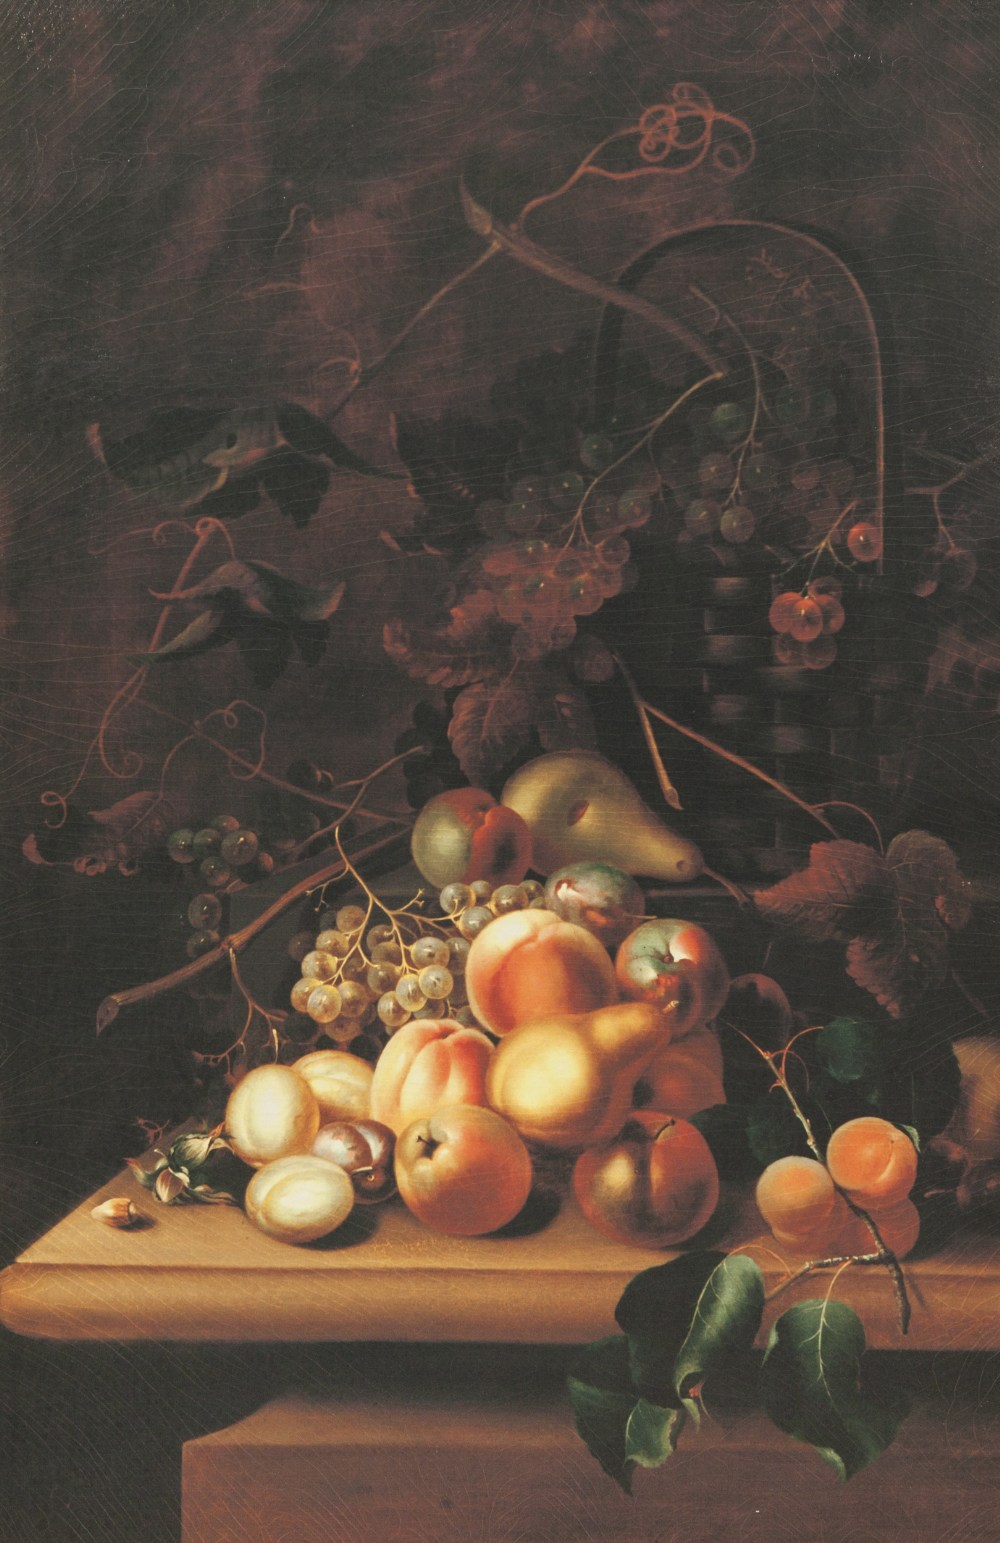 Lot 372 - AFTER THE ORIGINAL FROM THE HAMILTON ART COLLECTION COLOUR PRINT ON CANVAS Still life-fruit on a